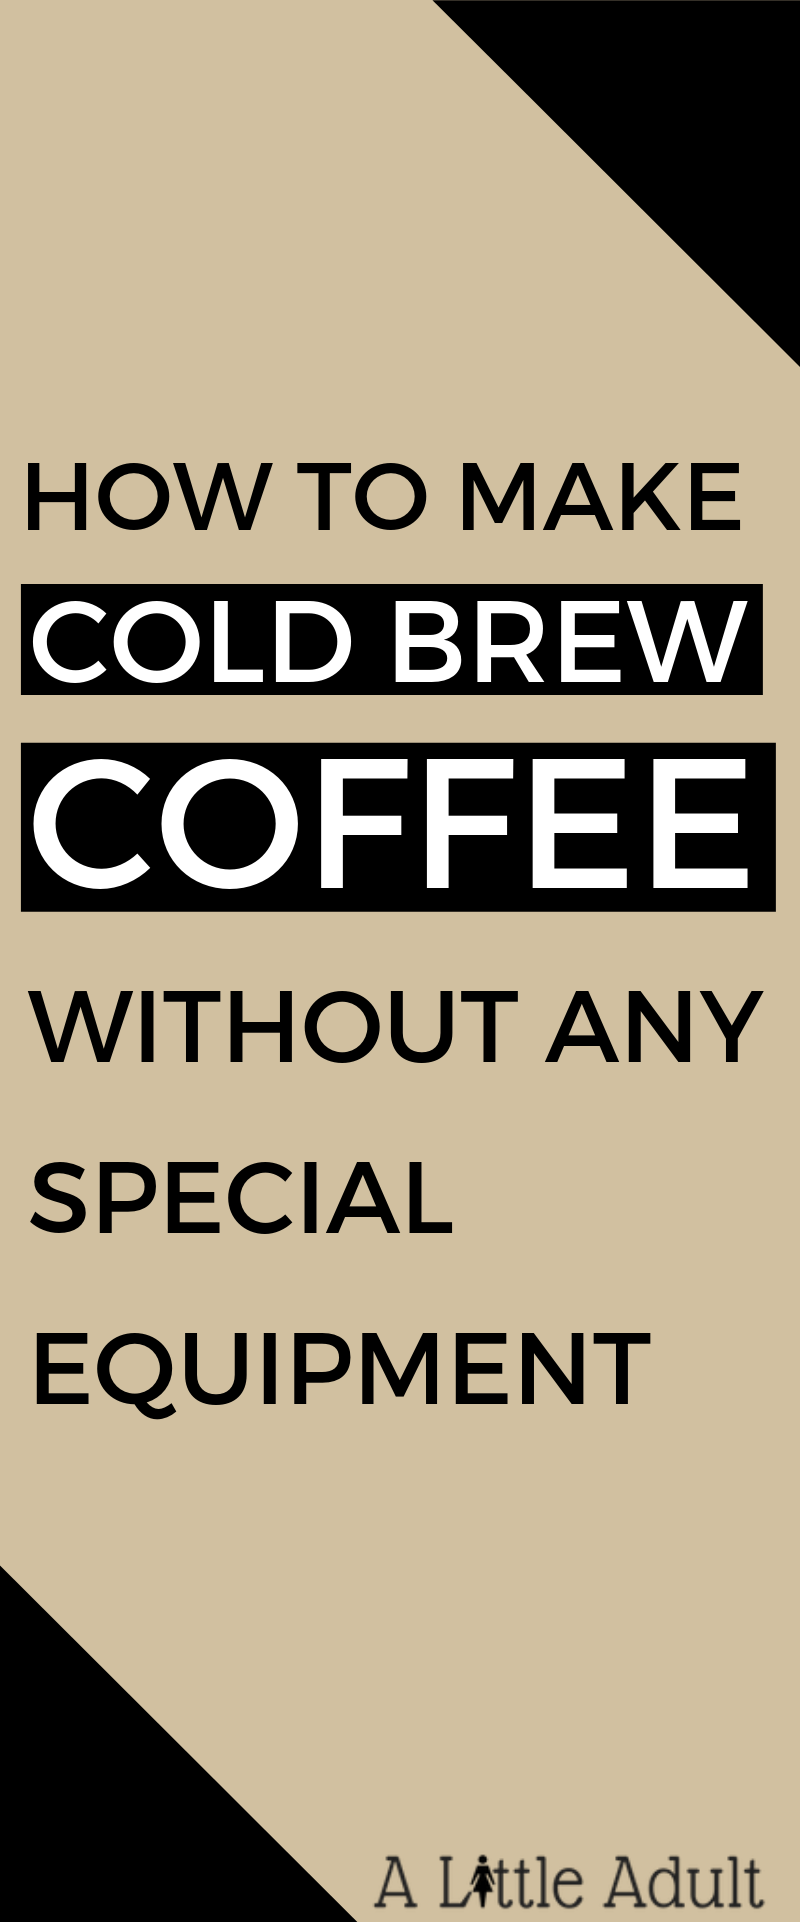 How To Make Cold Brew Coffee Without Any Special Equipment